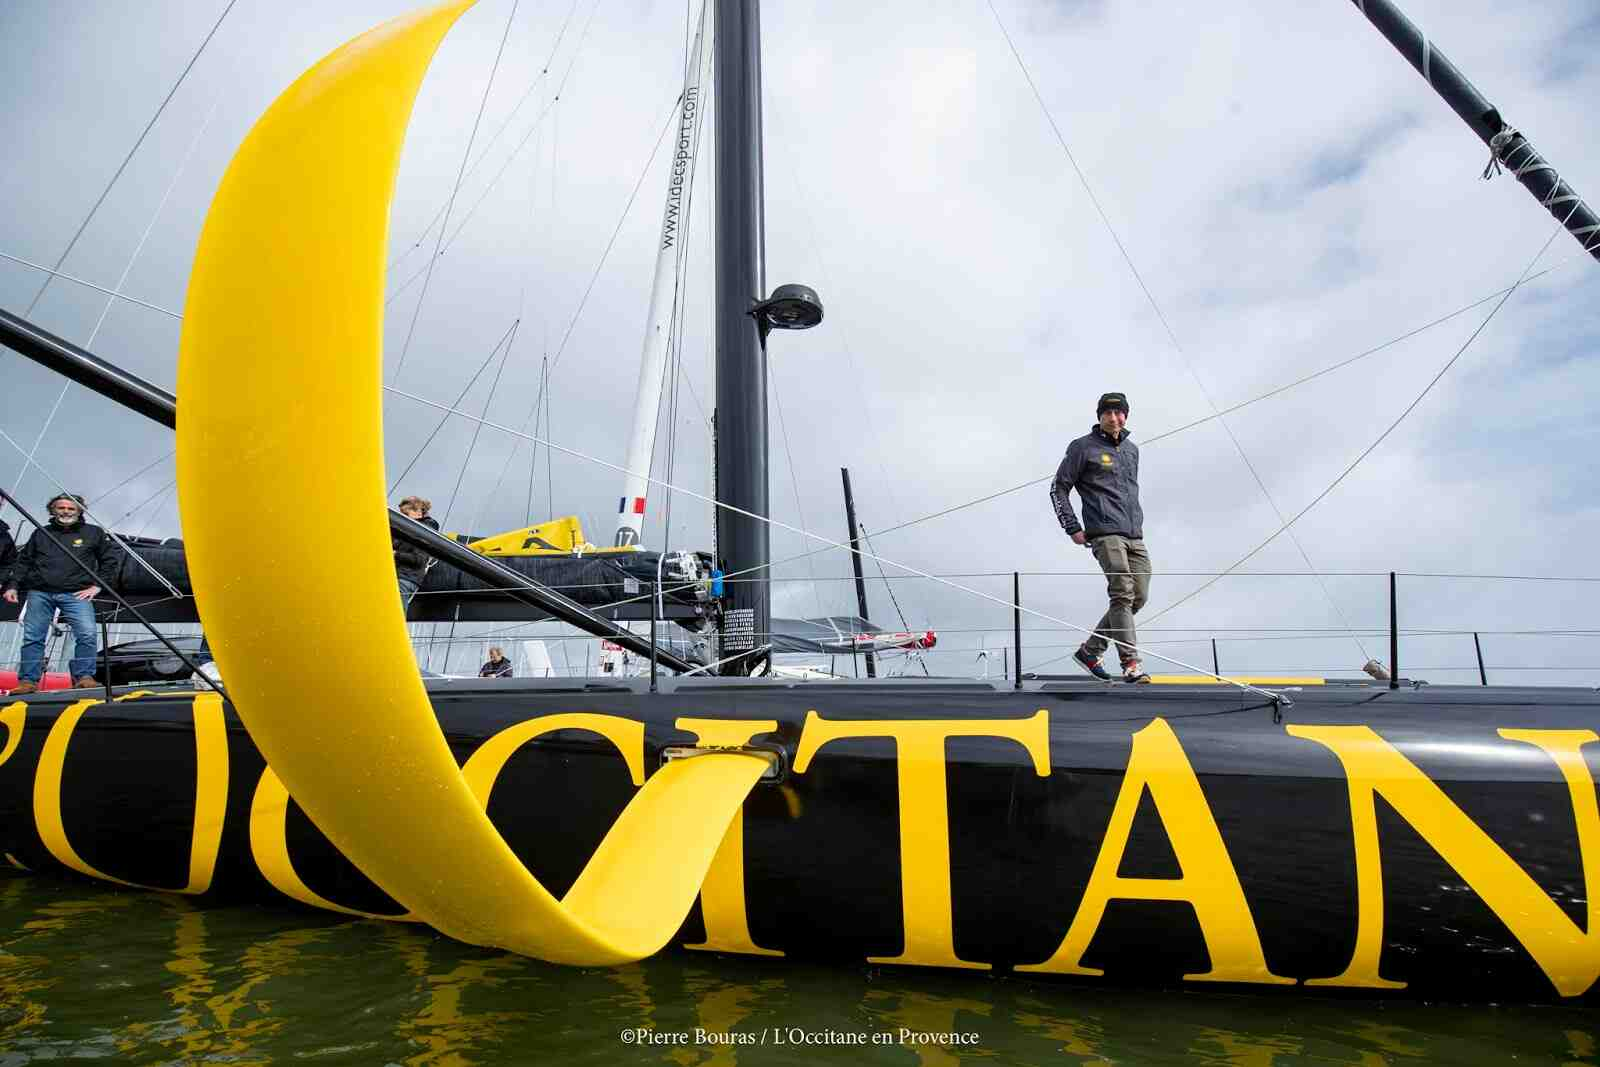 Comment Imoca Leaf agit-il?